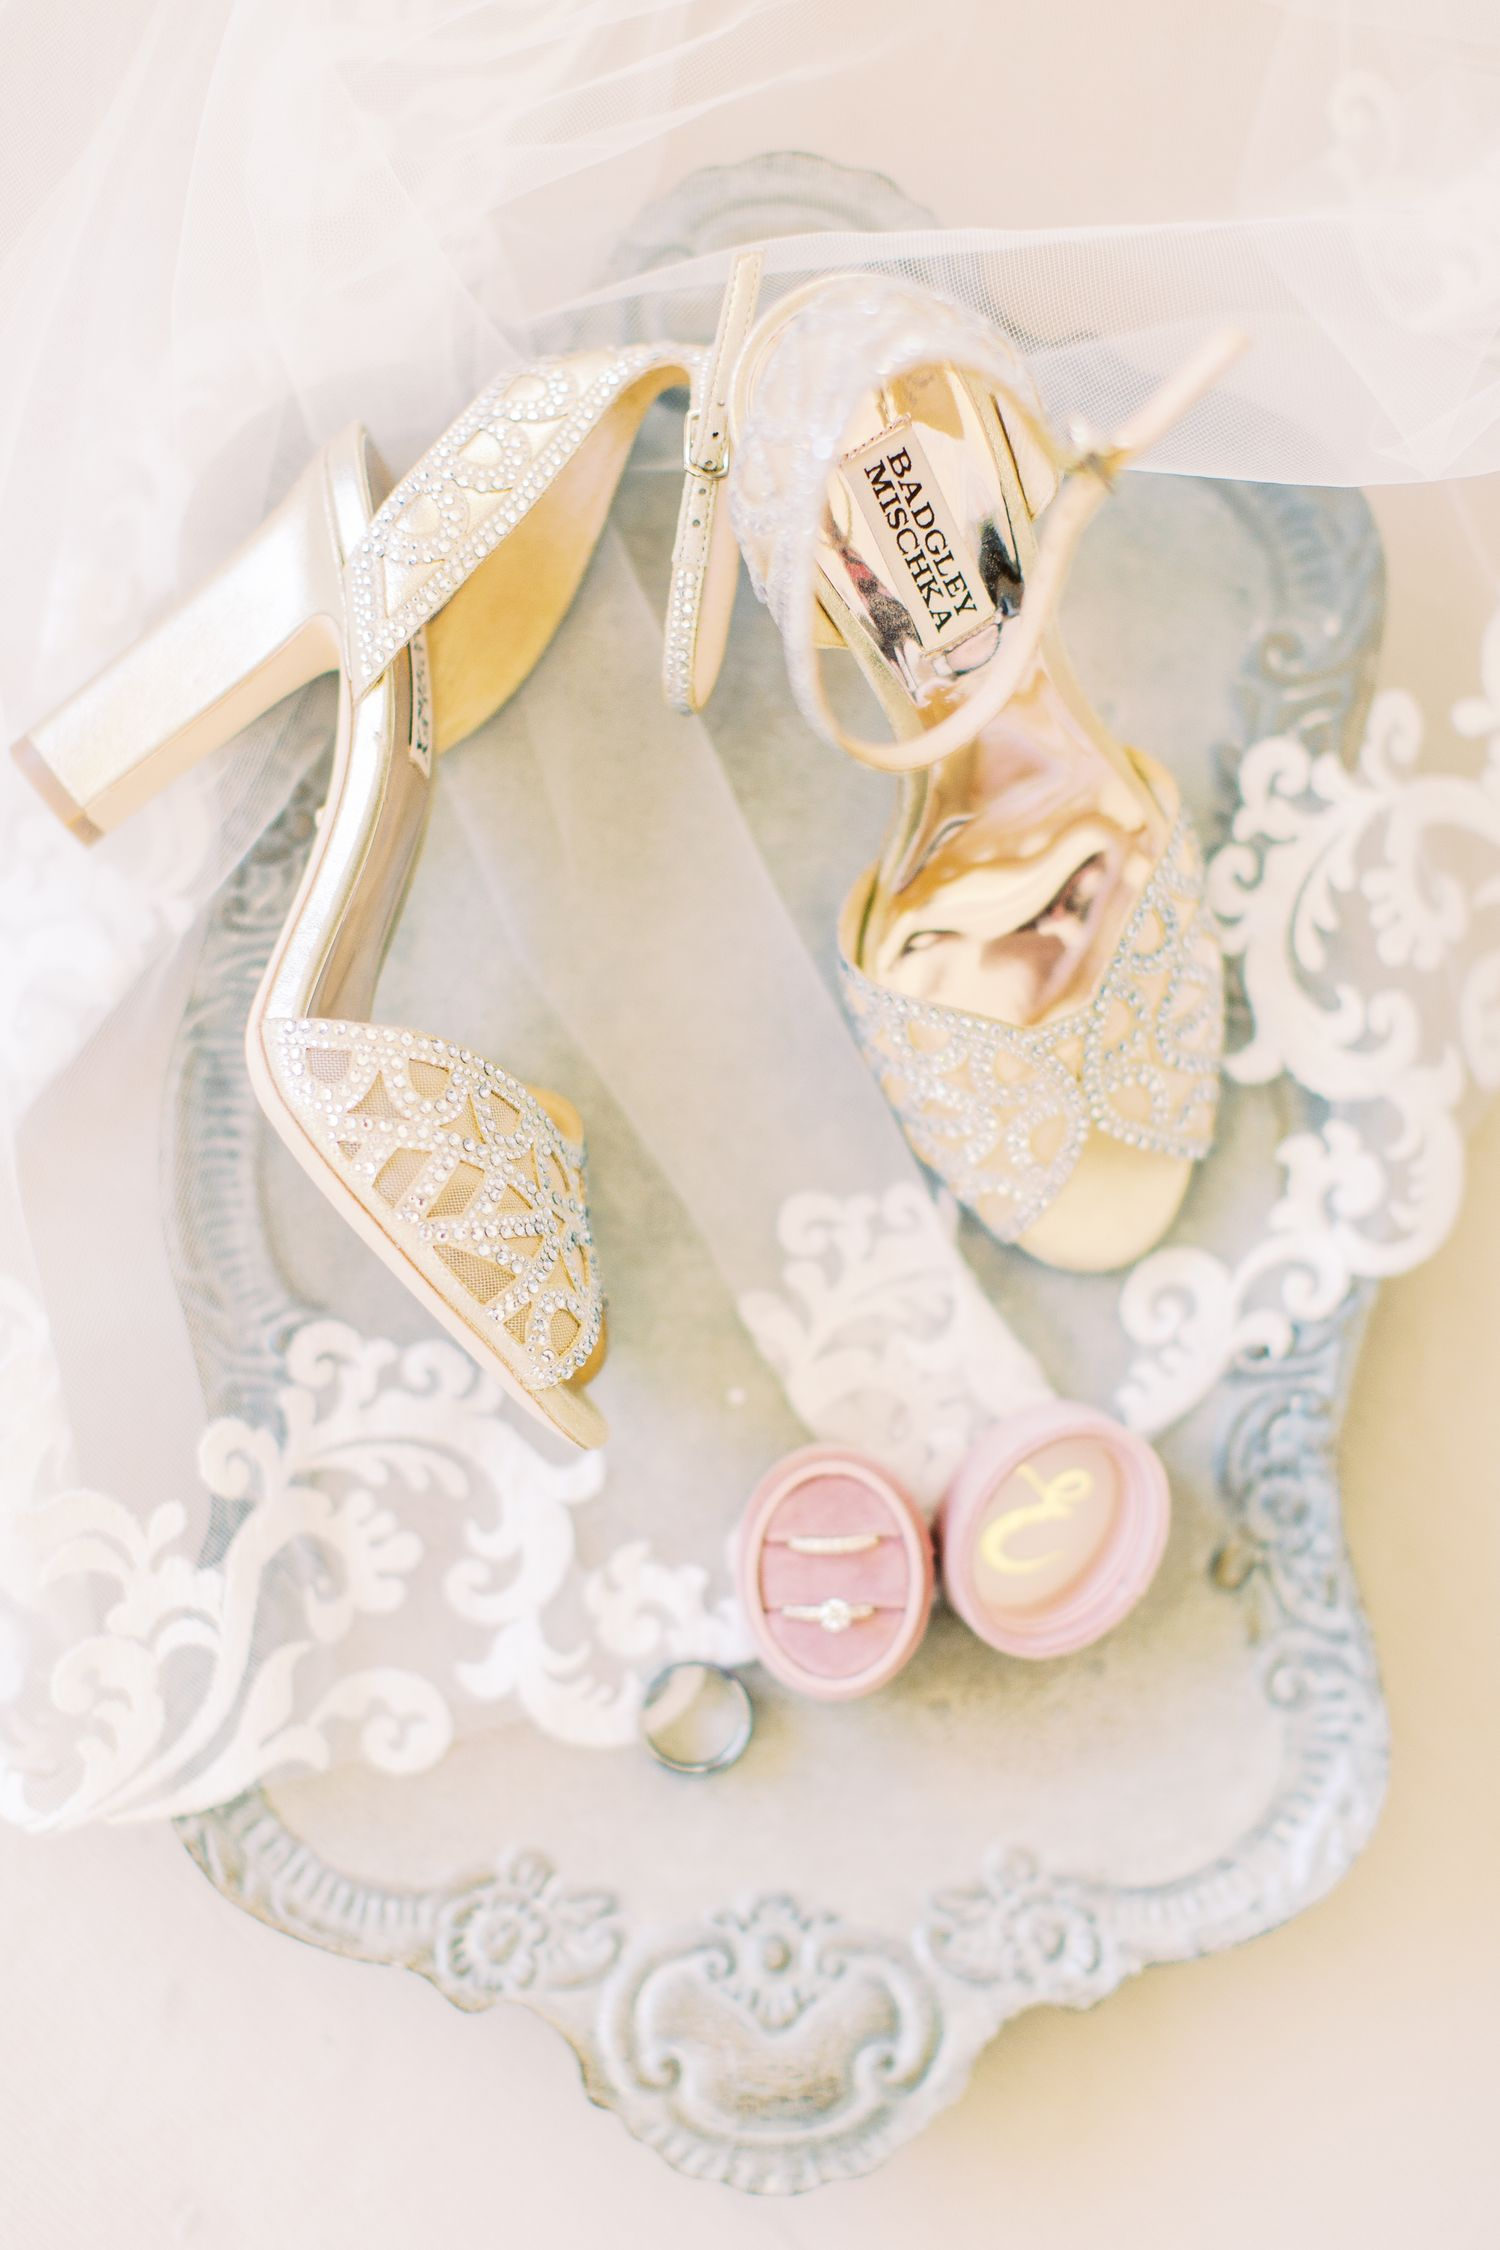 wedding details of badgley mischka shoes and wedding ring on a veil dripped tray